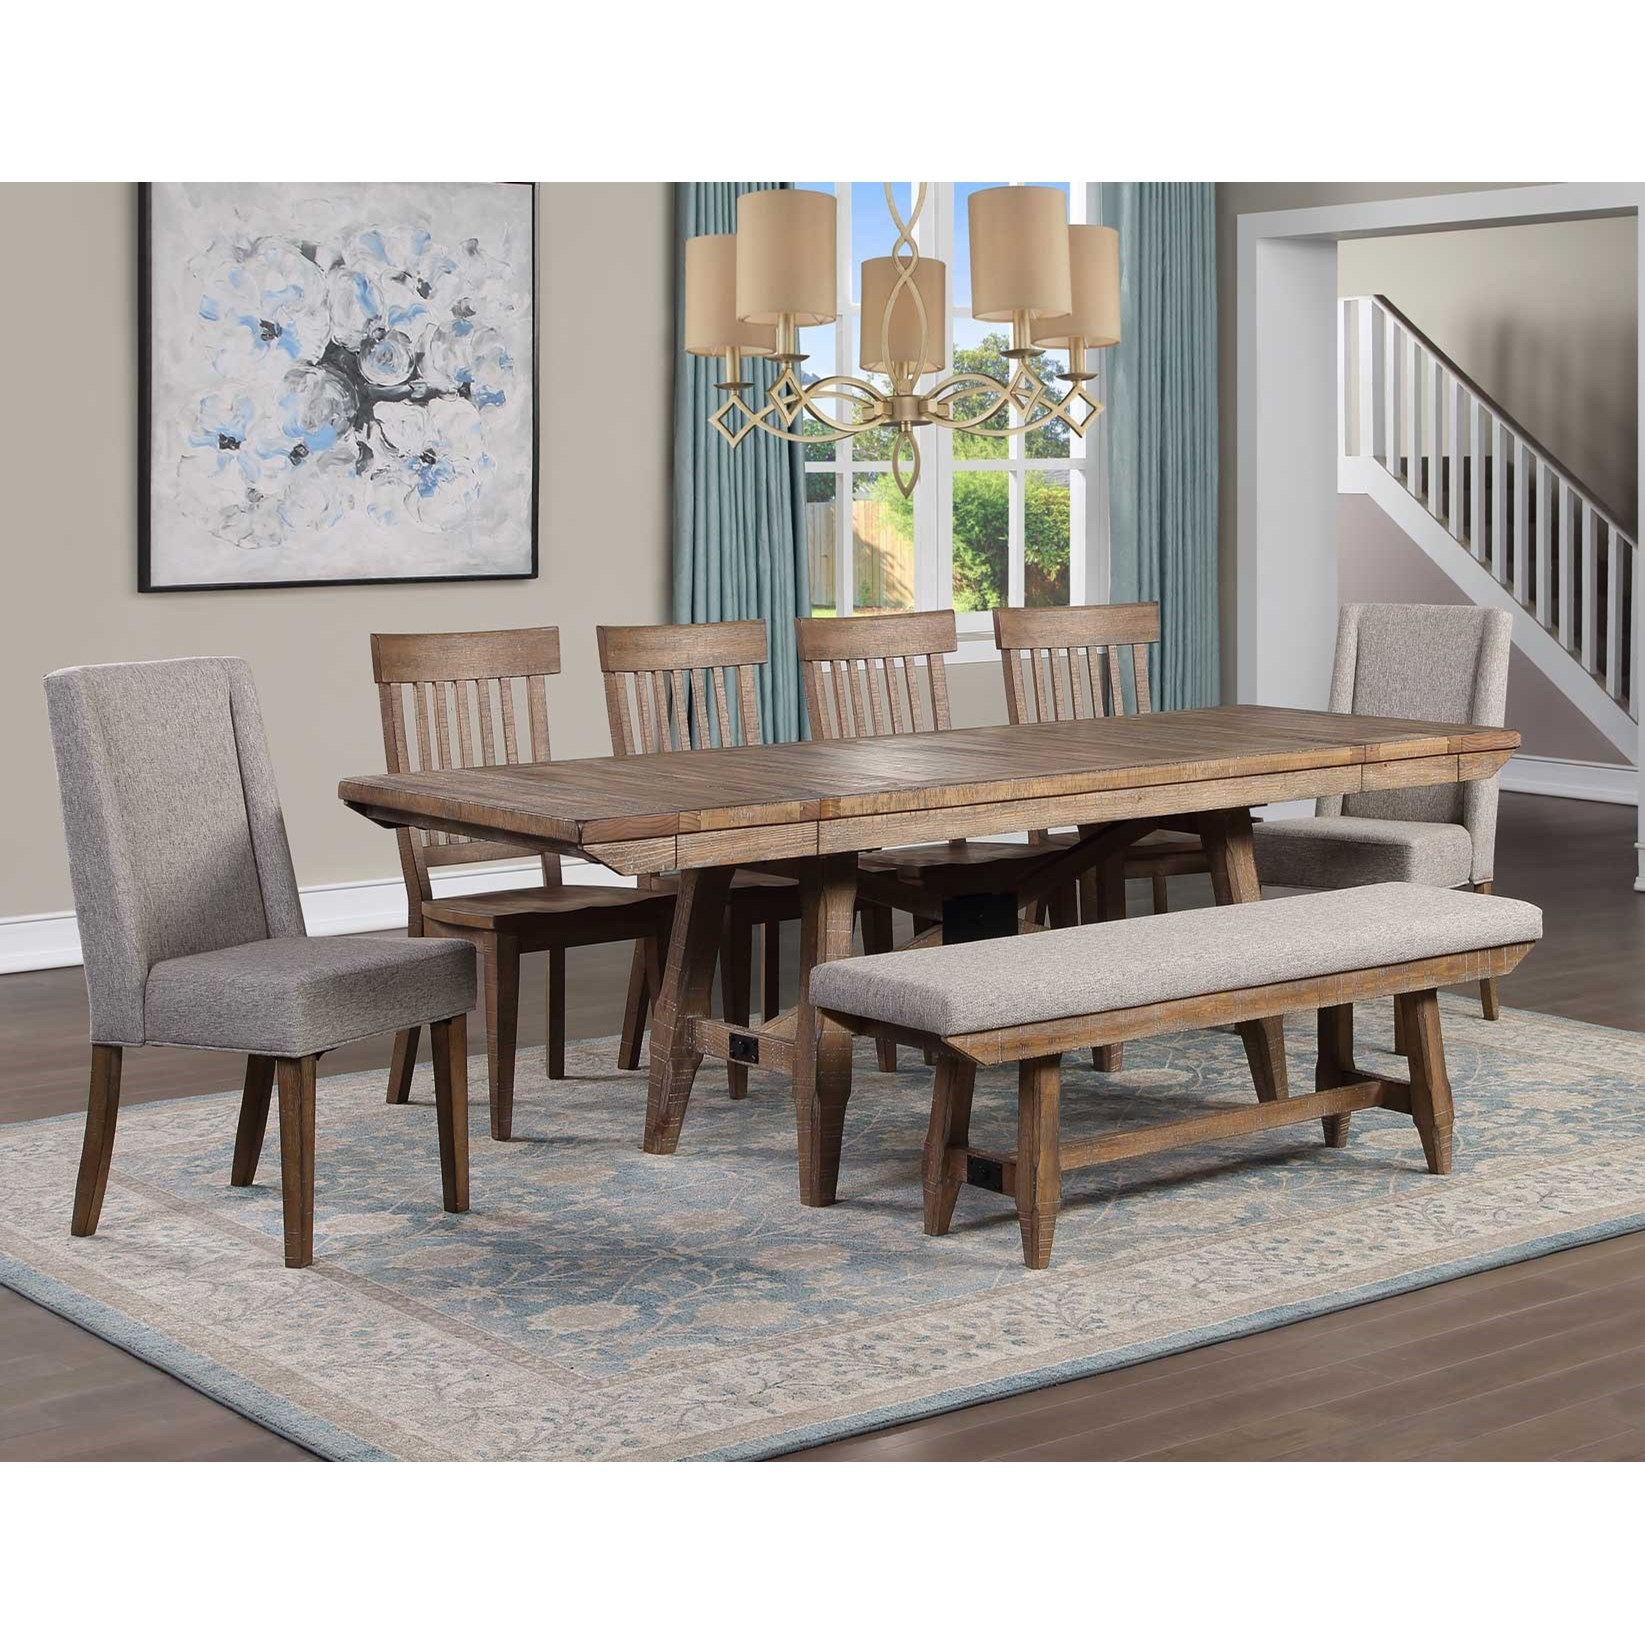 Riverdale 9 Piece Dining Table Set